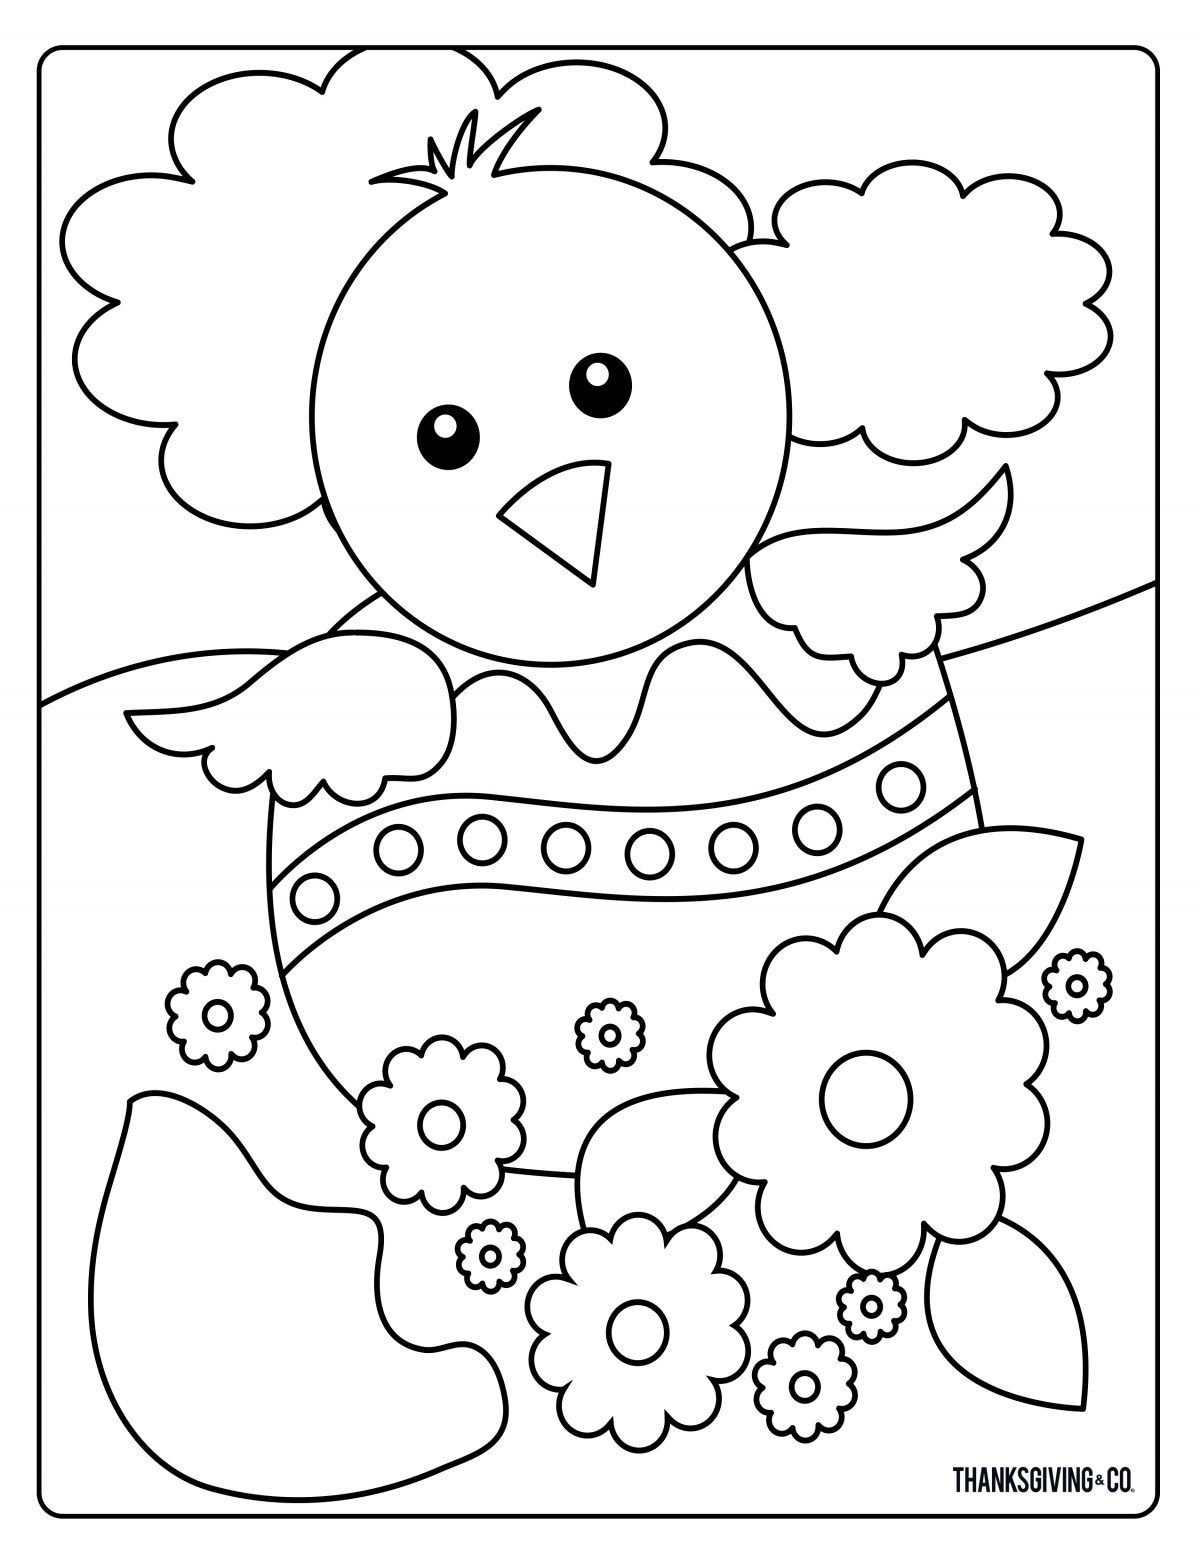 8 Free Printable Easter Coloring Pages Your Kids Will Love